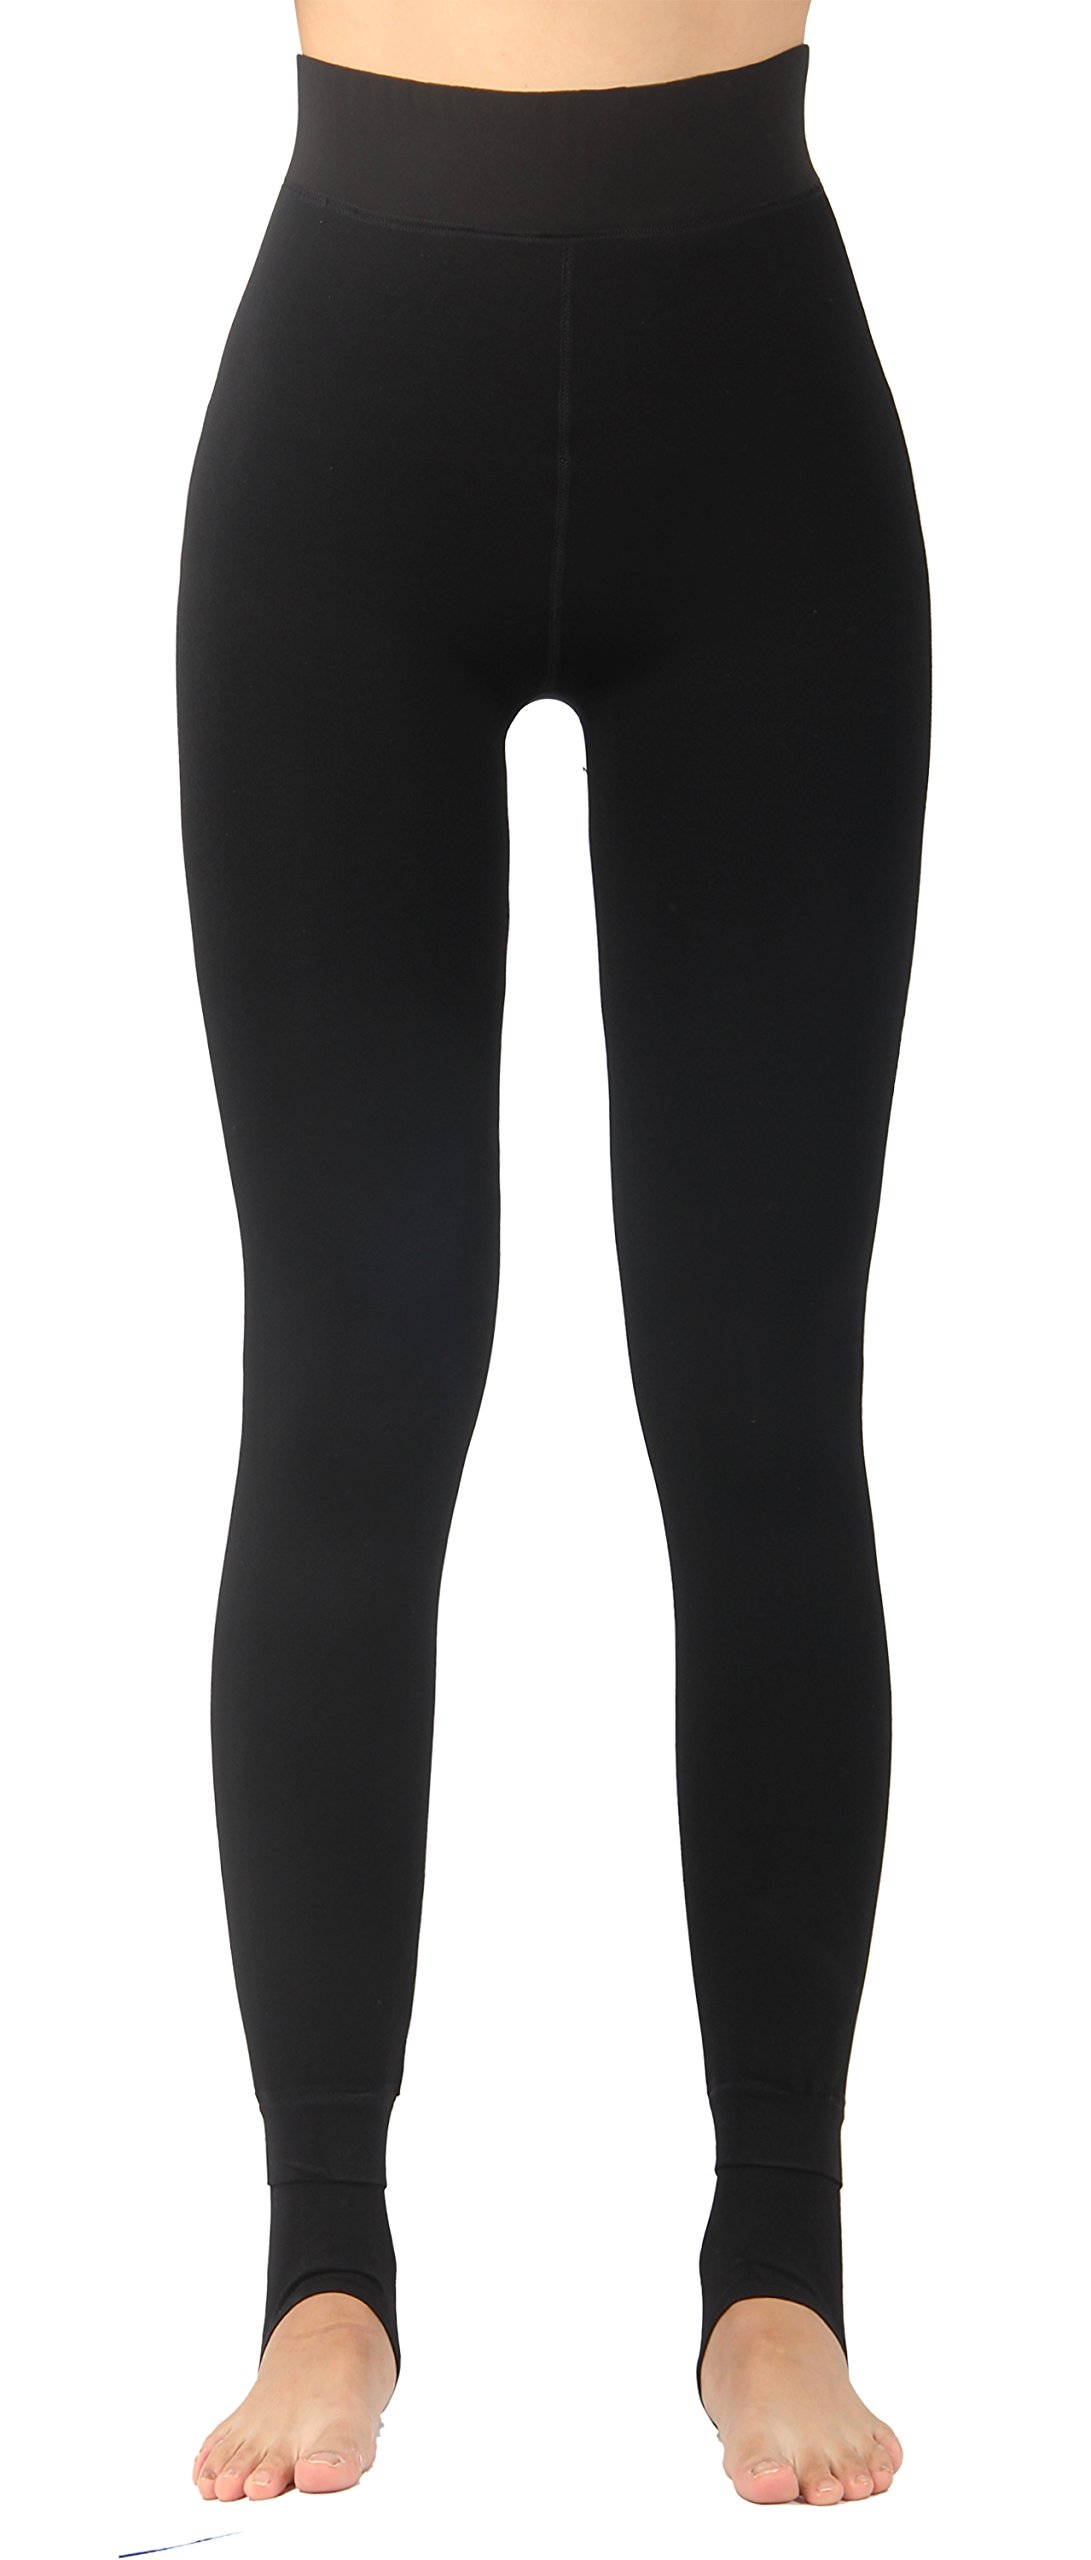 iLoveSIA Women's Thick Faux Fur Lined Thermal Legging One Size Fit XS to XL by iLoveSIA (Image #1)